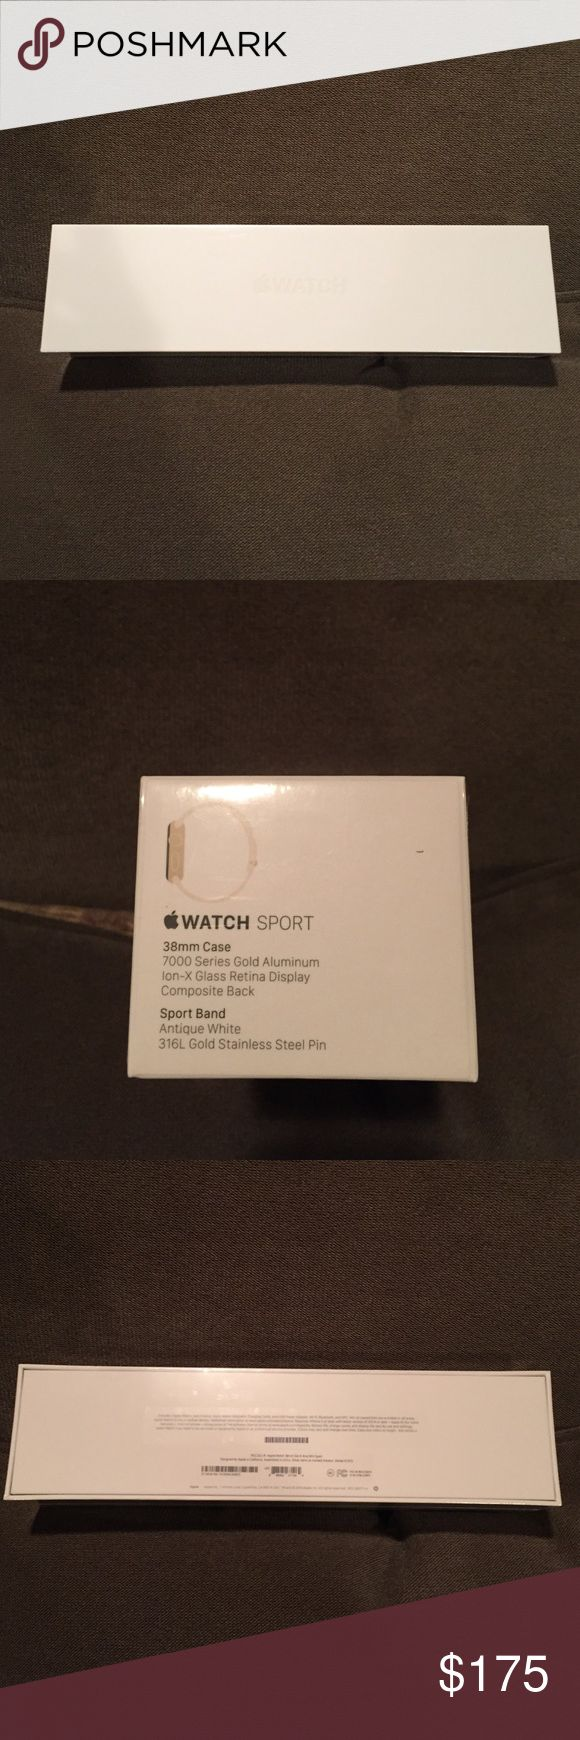 Apple sport watch Brand new, never opened Apple Watch 38mm case - 7000 series gold aluminum Ion-X Glass Retina display composite black - sport band antique white. Perfect holiday gift!! Apple Accessories Watches